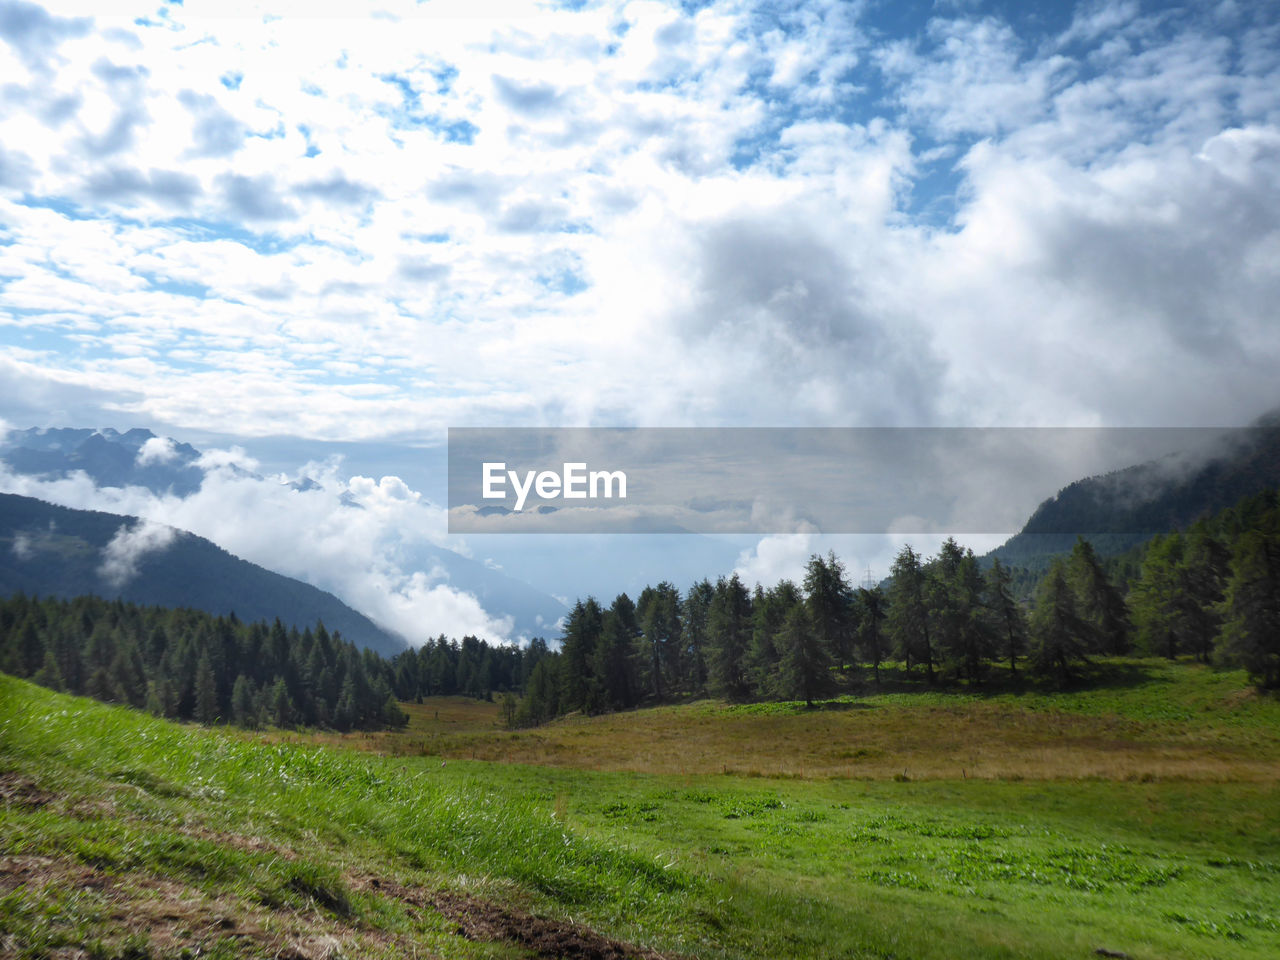 1800 Mt Mortirolo Pass Backlit Beauty In Nature Cloud - Sky Day Environment Grass Land Landscape Landscape_photography Mountain Nature No People Non-urban Scene Outdoors Pastures Scenics - Nature Sky Tranquil Scene Tranquility